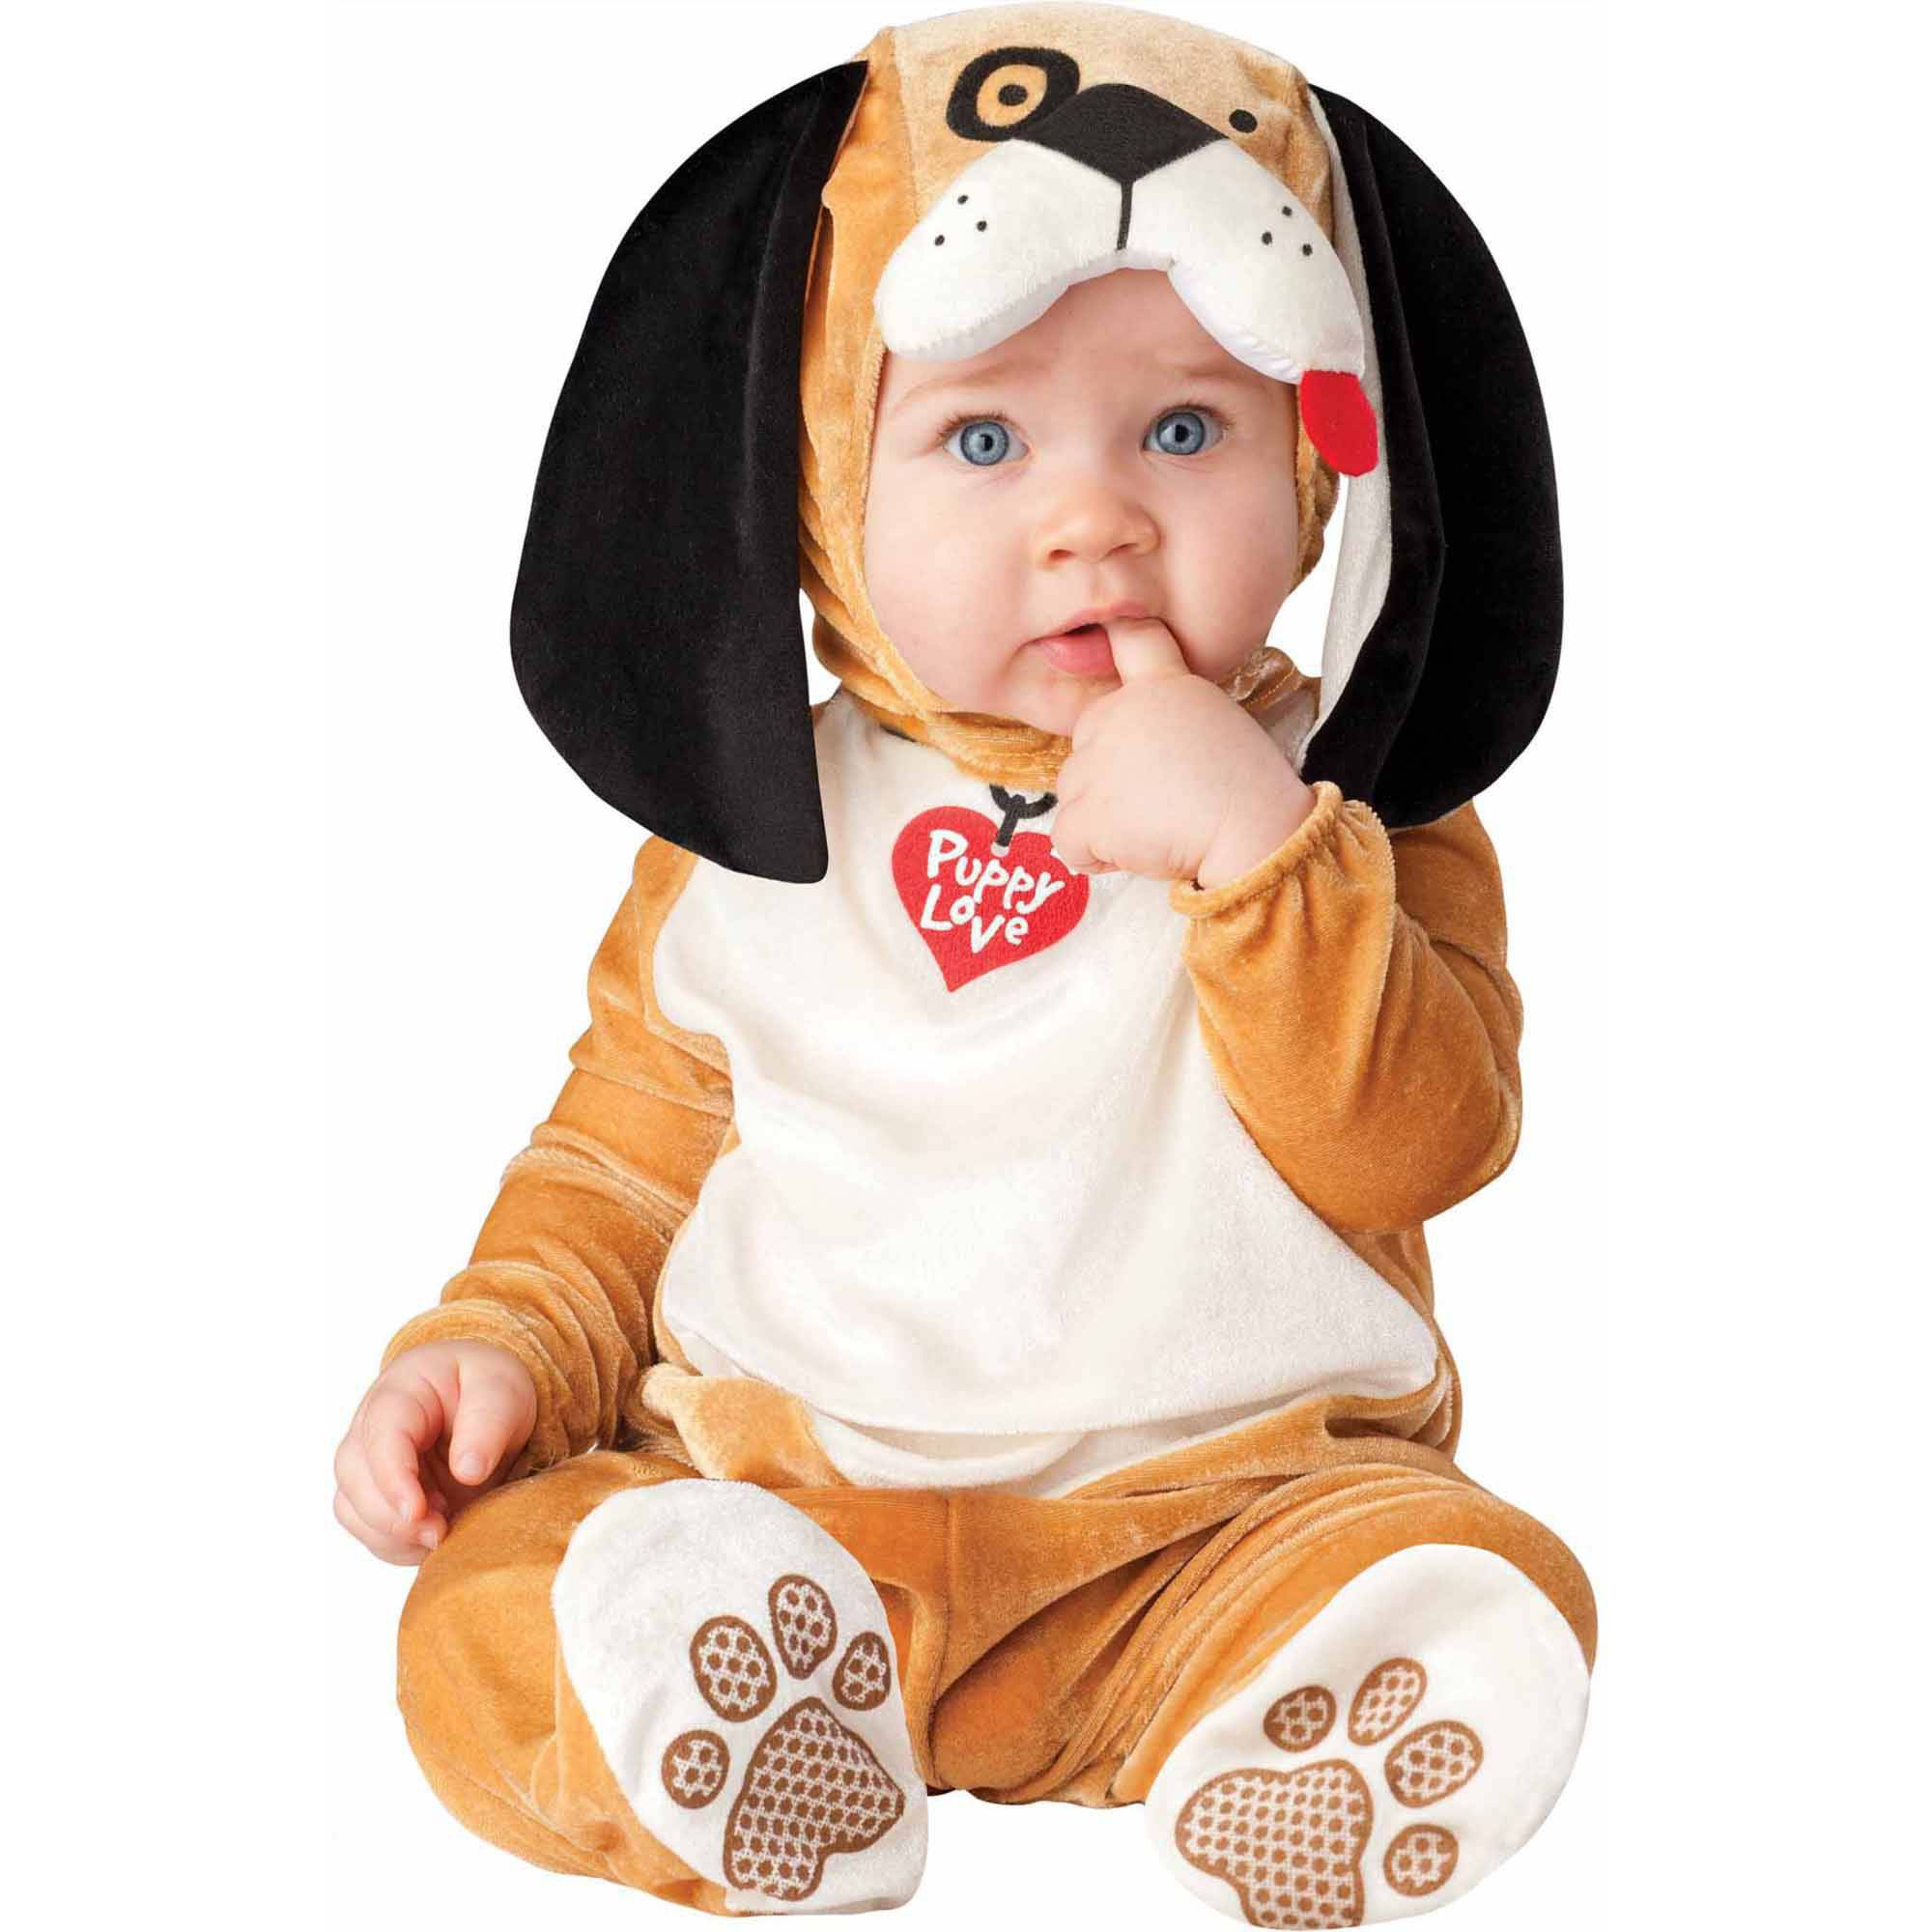 Puppy Love Boys' Toddler Halloween Costume